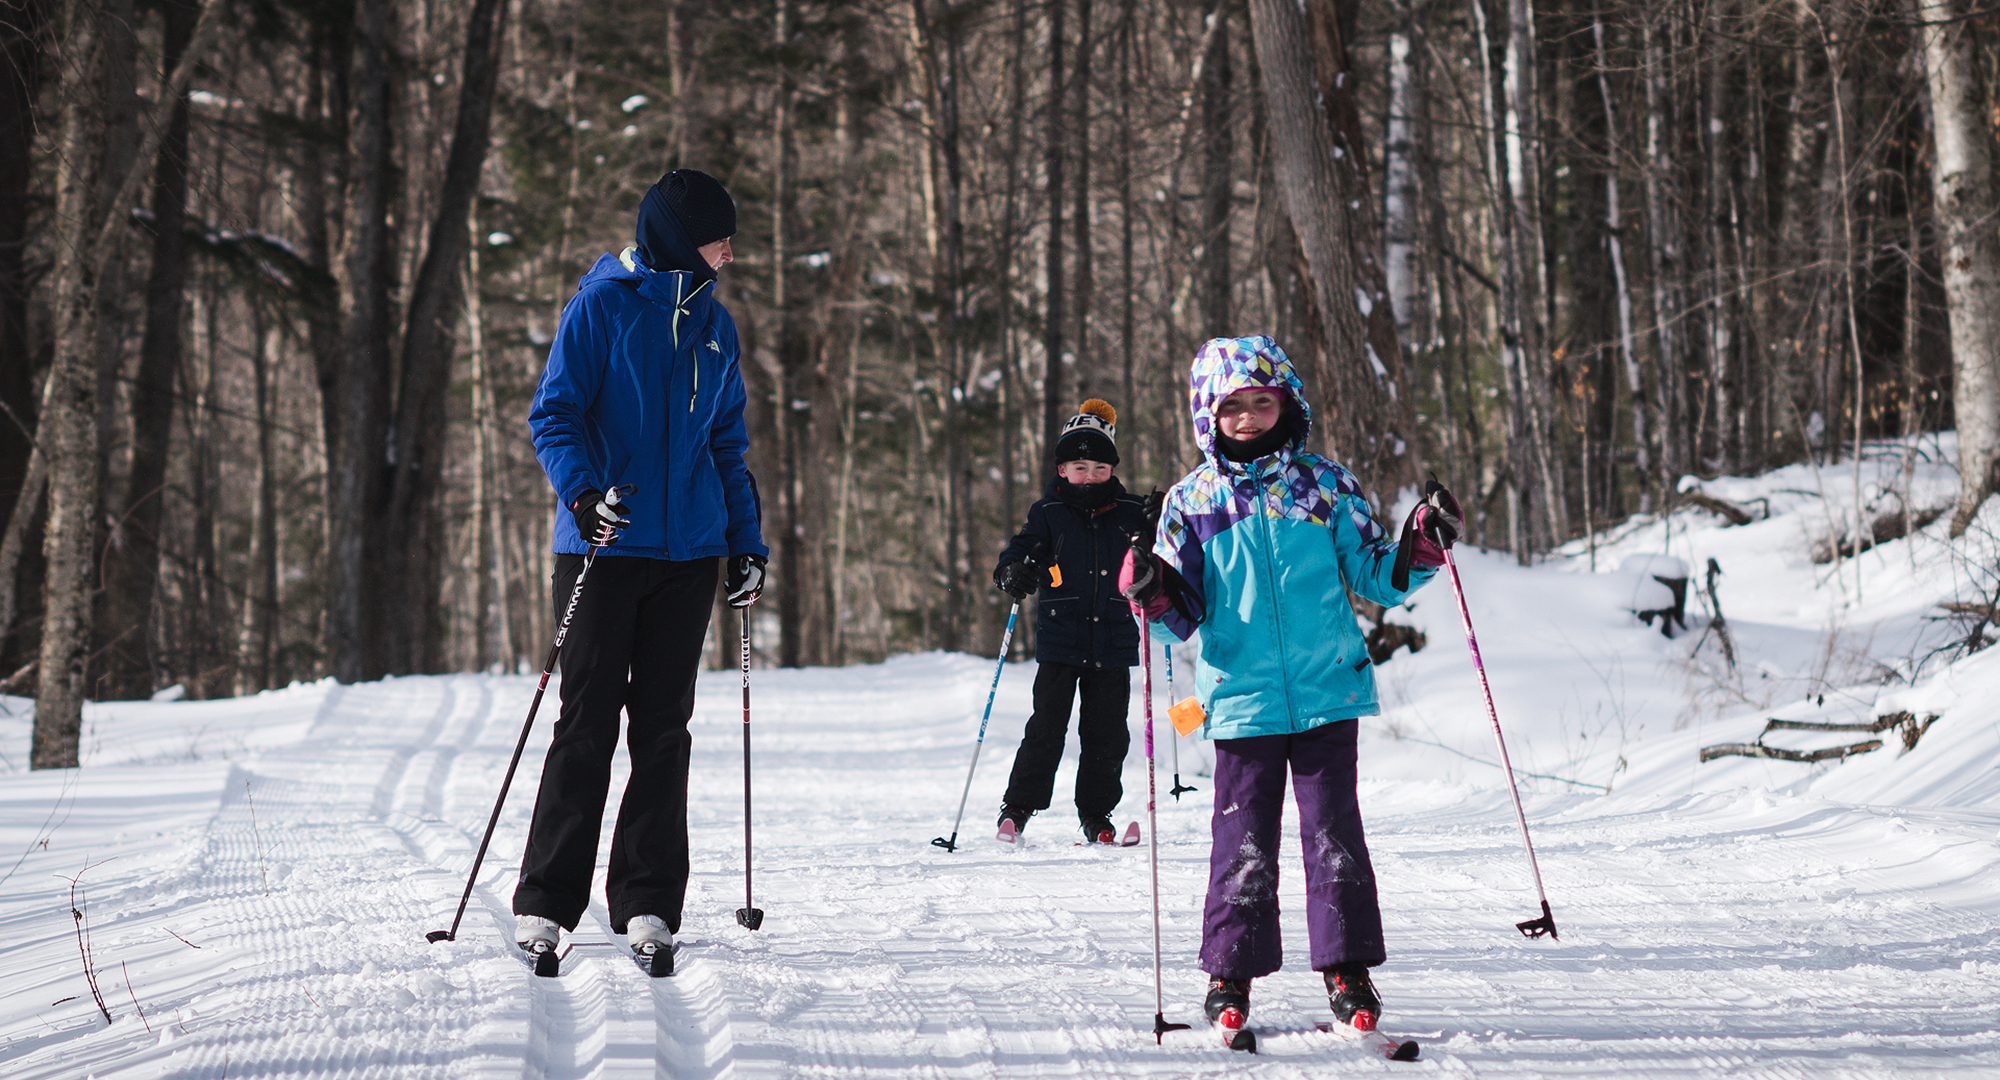 Nordic skiing in Stowe, Vermont